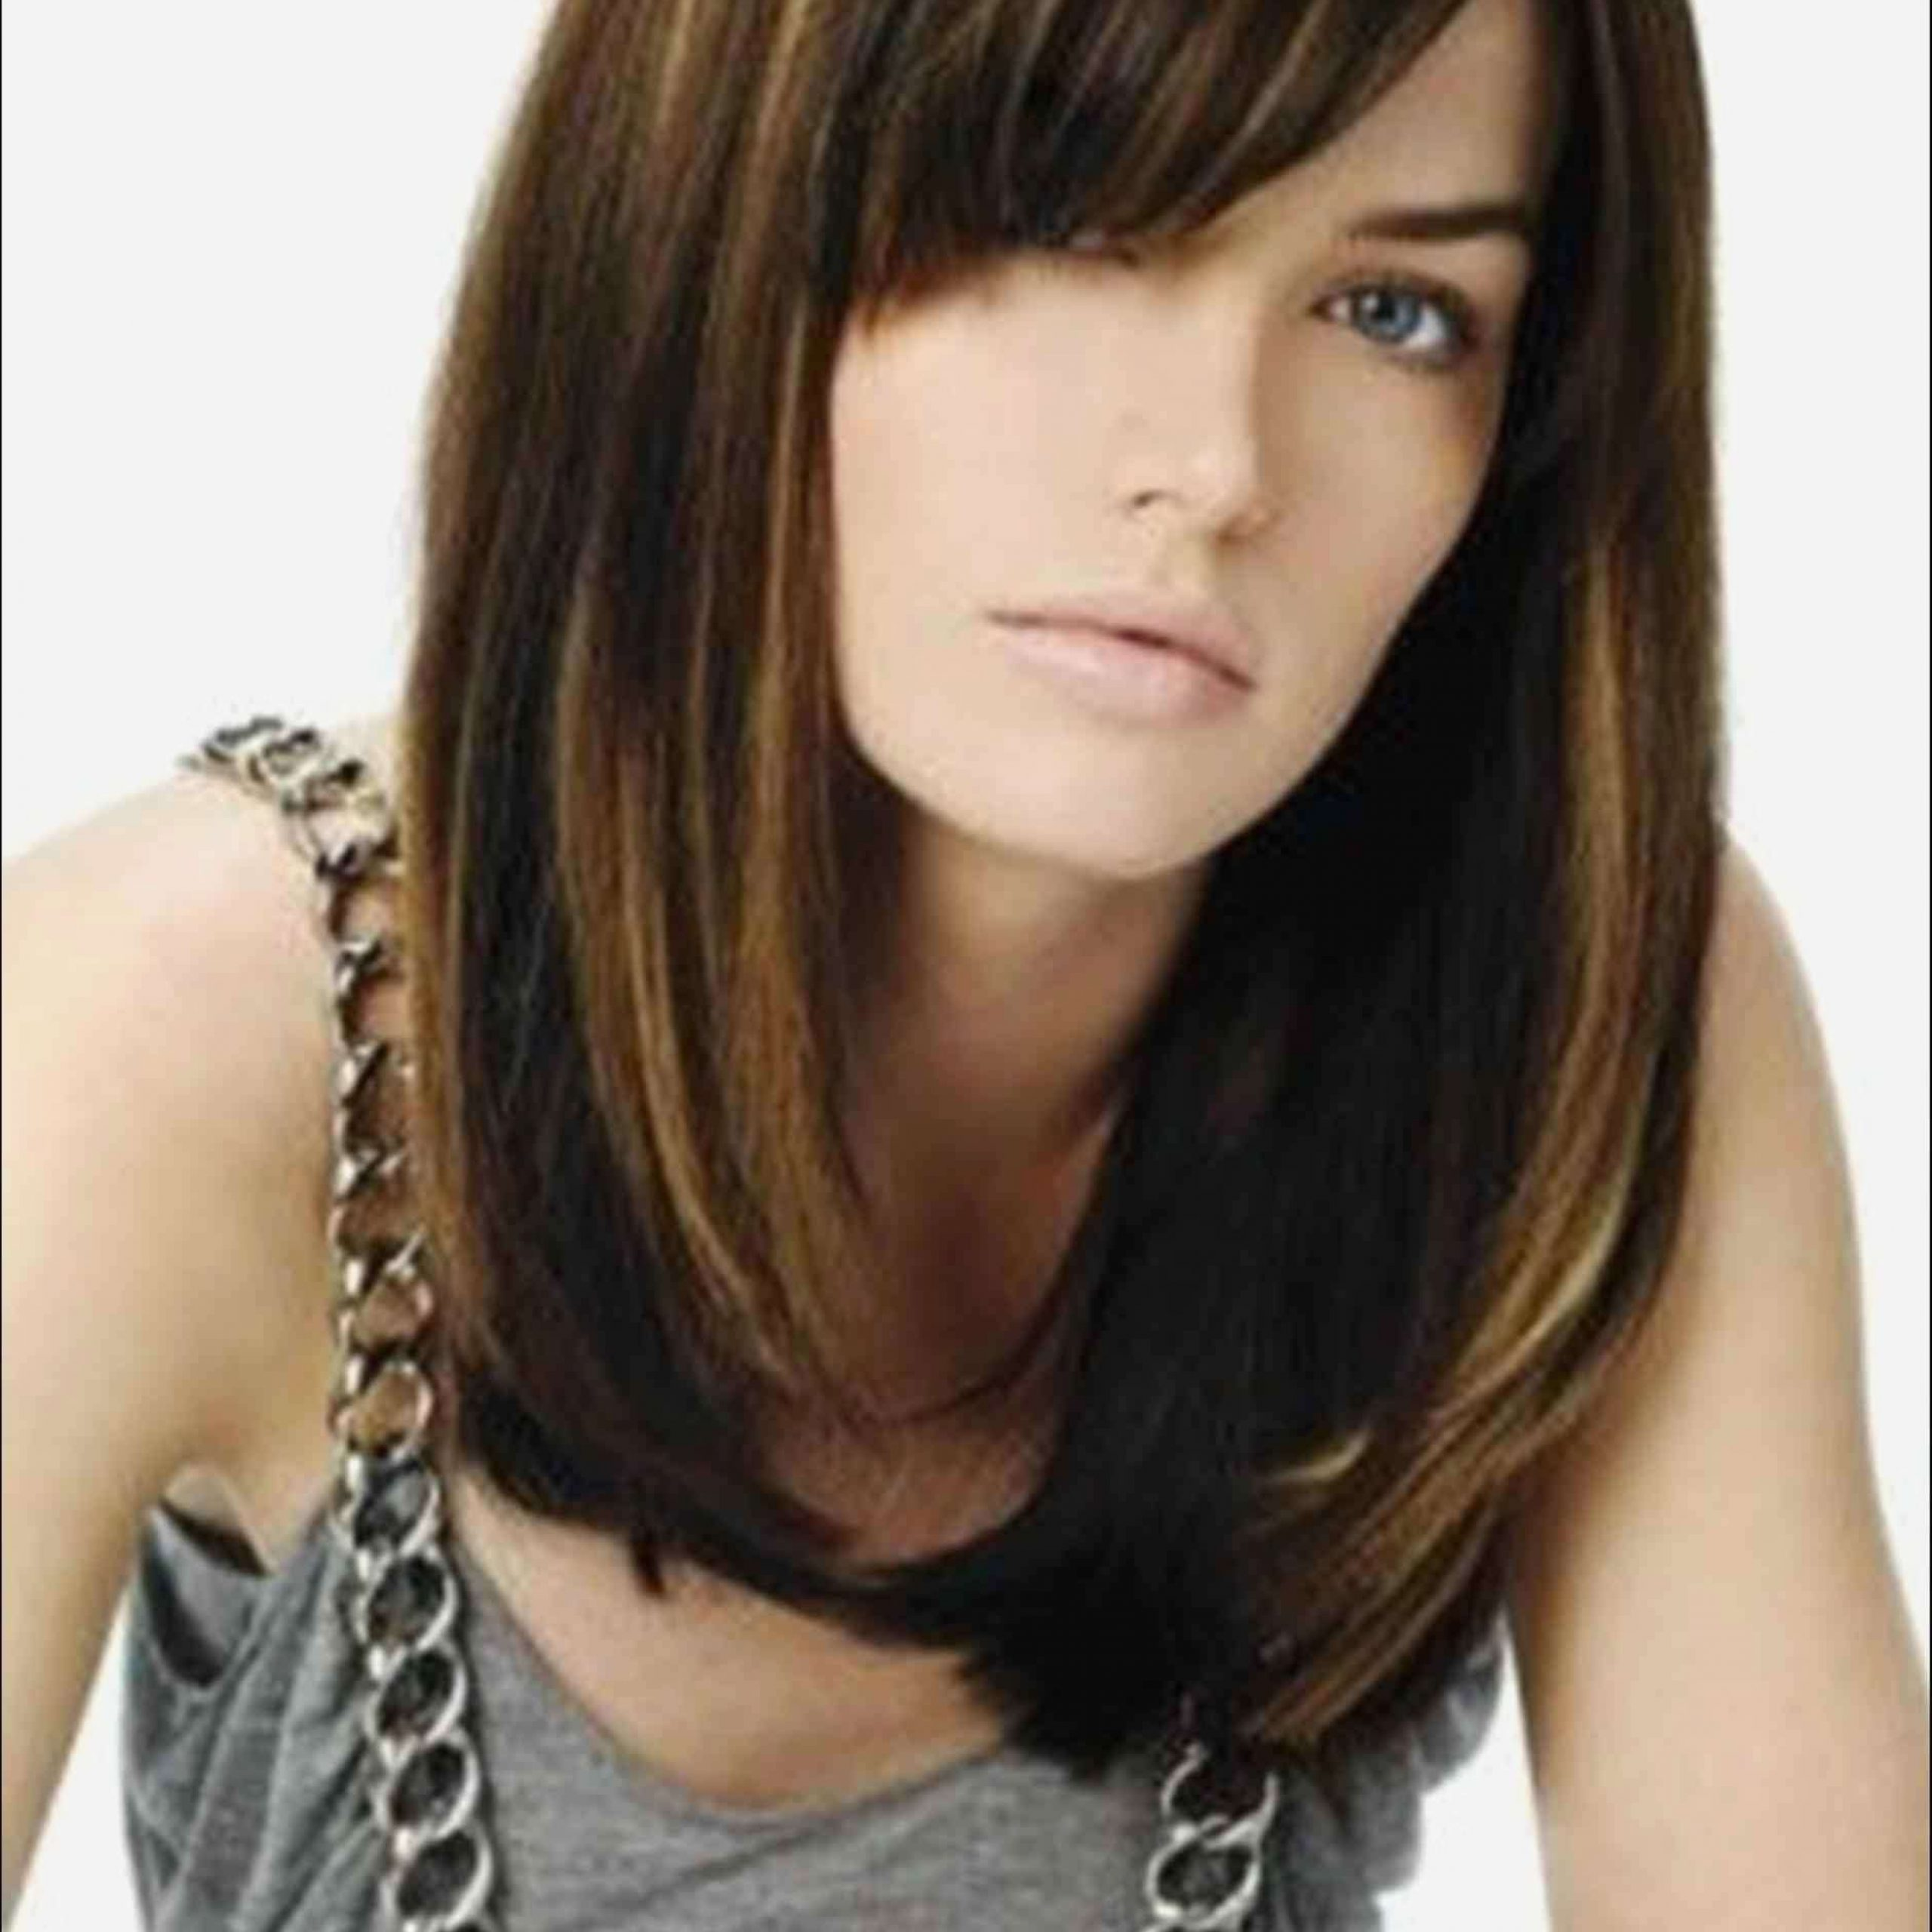 Long Hairstyles Best Long Bob Hairstyles For Round Faces Regarding Long Bob Hairstyles For Round Face Types (View 6 of 20)